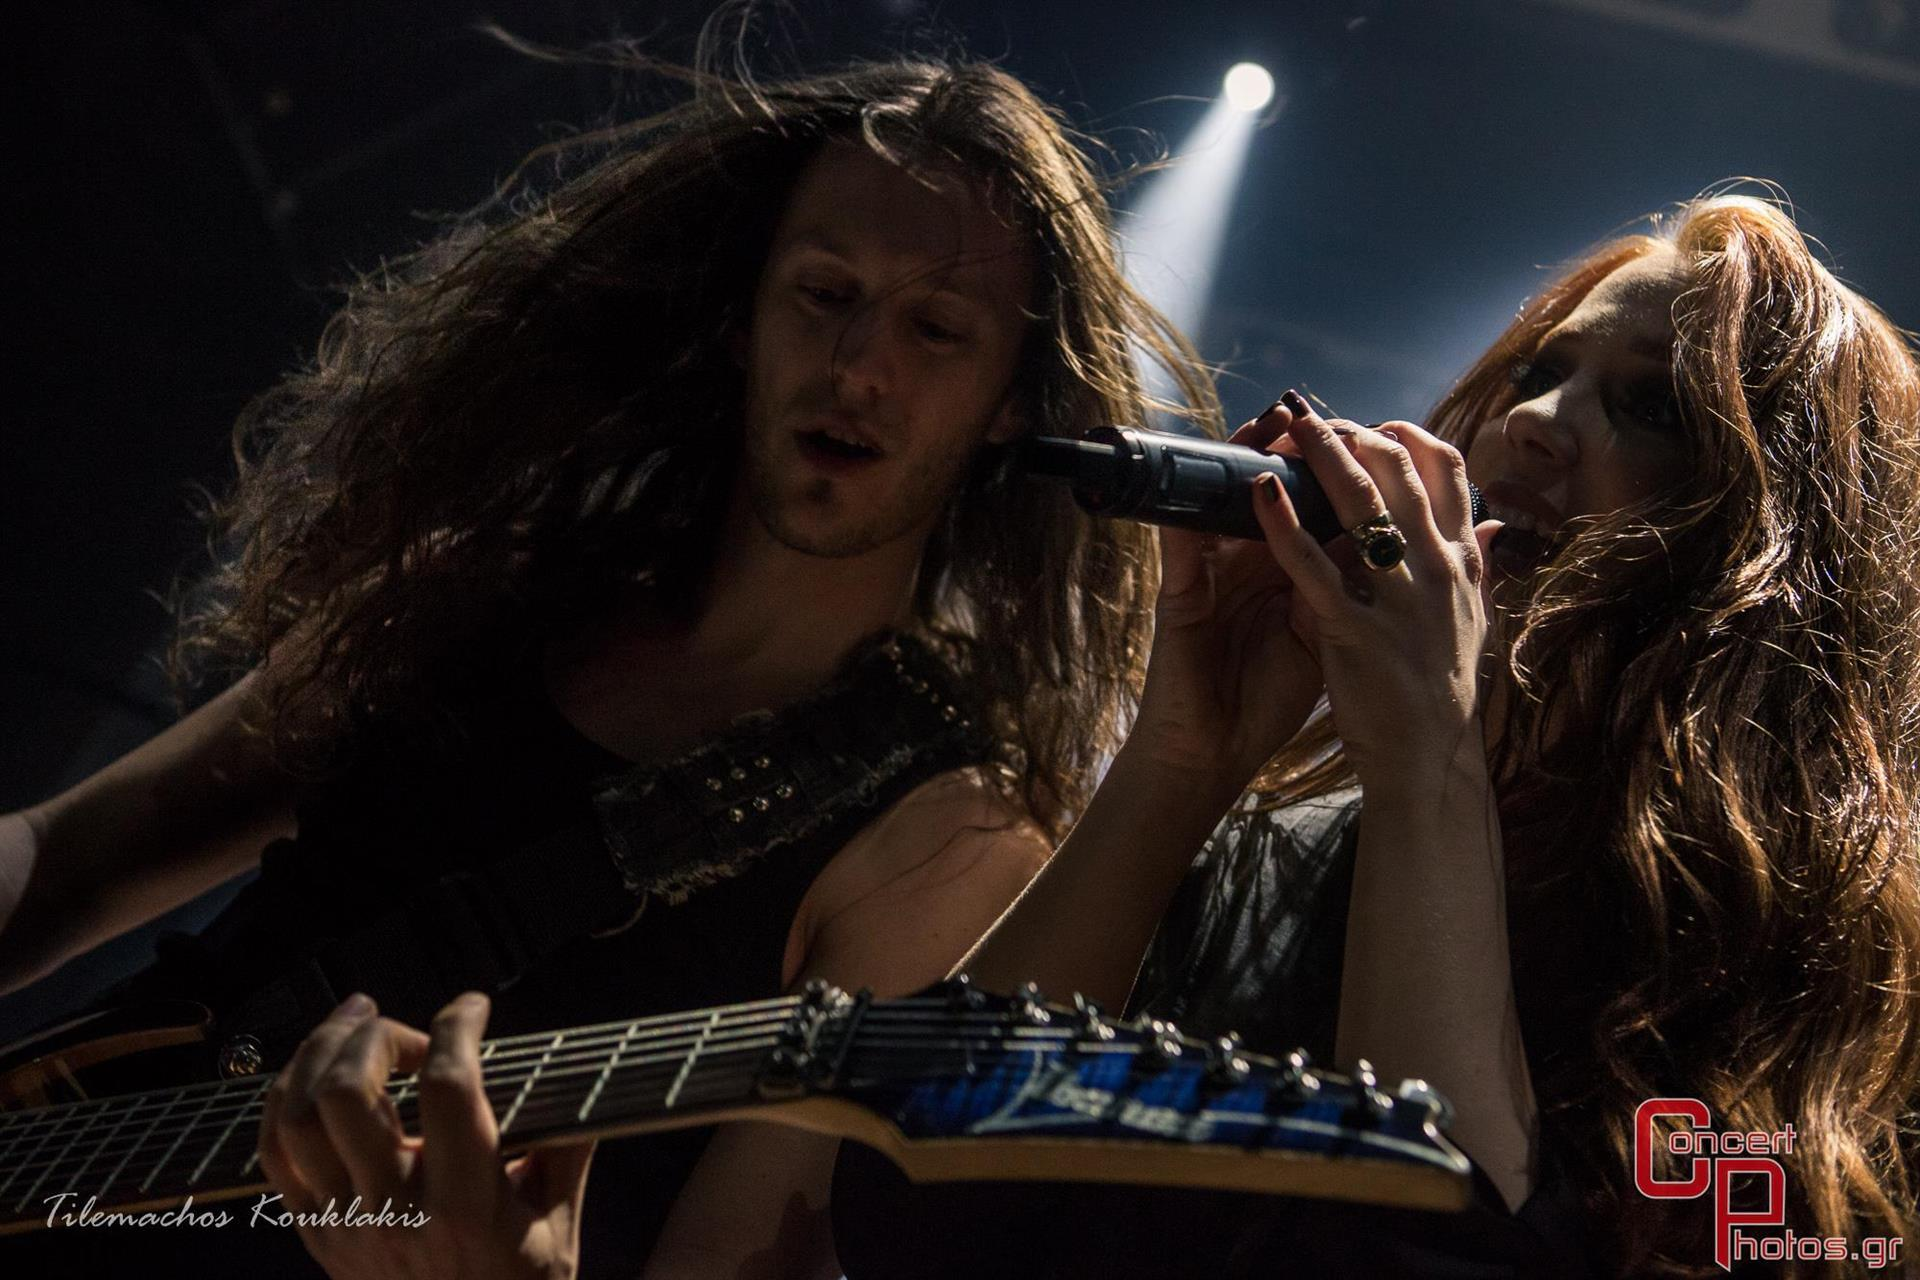 EPICA Jaded Star Fuzz Club-EPICA Jaded Star Fuzz Club photographer:  - Epica_20